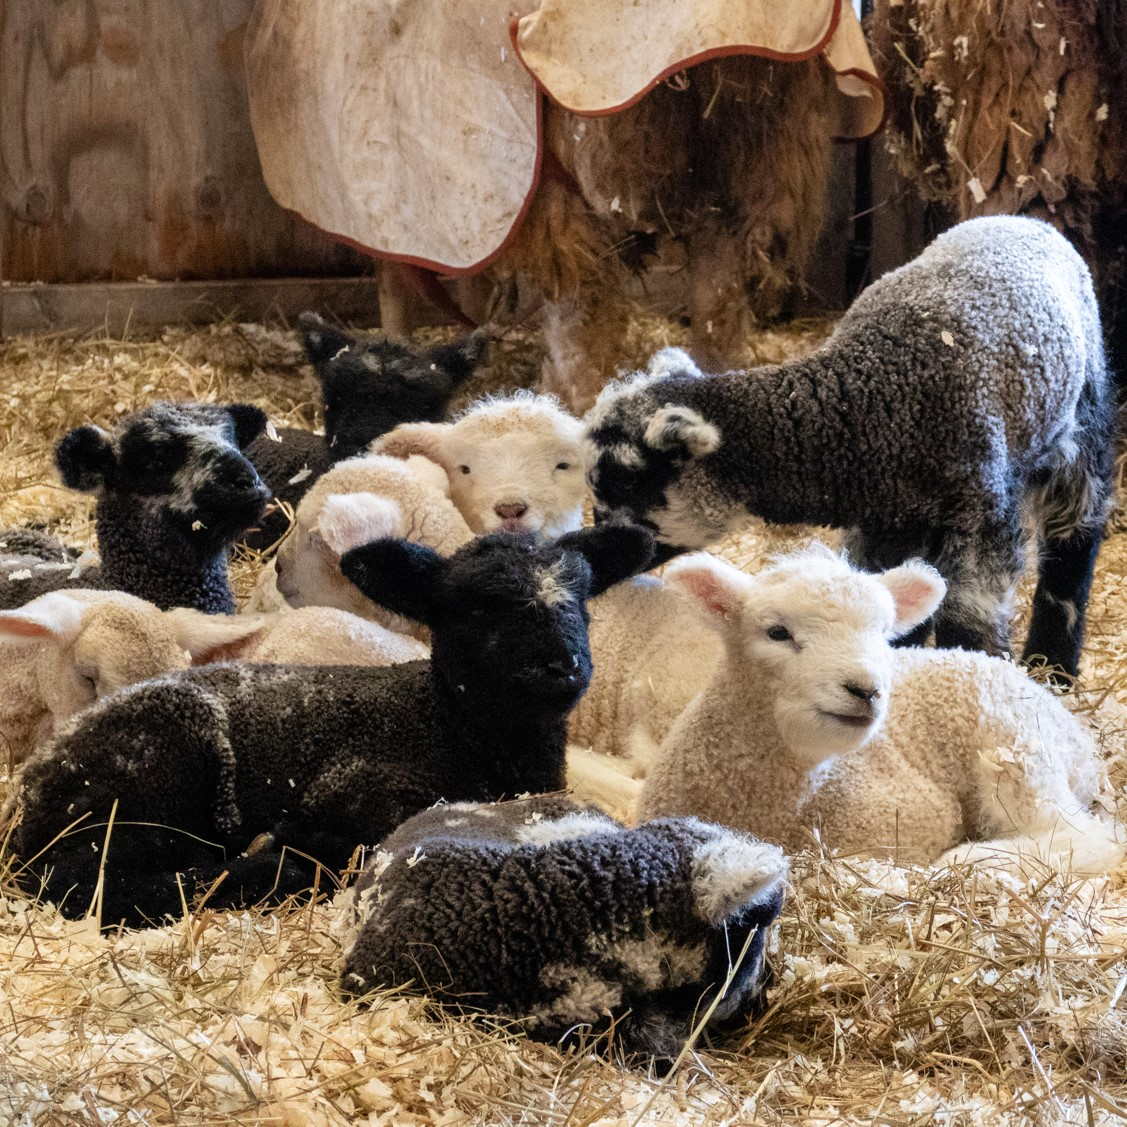 It's lambing season at College of the Atlantic Peggy Rockefeller Farms! Our flocks of Romney and Katahdin sheep are quite productive this spring, with several dozen lambs expected. . . #foodsystems #smallfarms #lamb #lambsofinstagram #lambingseason #farmanimals #animalhusbandry #spring #signsofspring #collegeoftheatlantic #winterterm #farmlife #barharbor #maine #ecology #sustainability #selfdirectededucation #photocred: Yoi Ashida '20